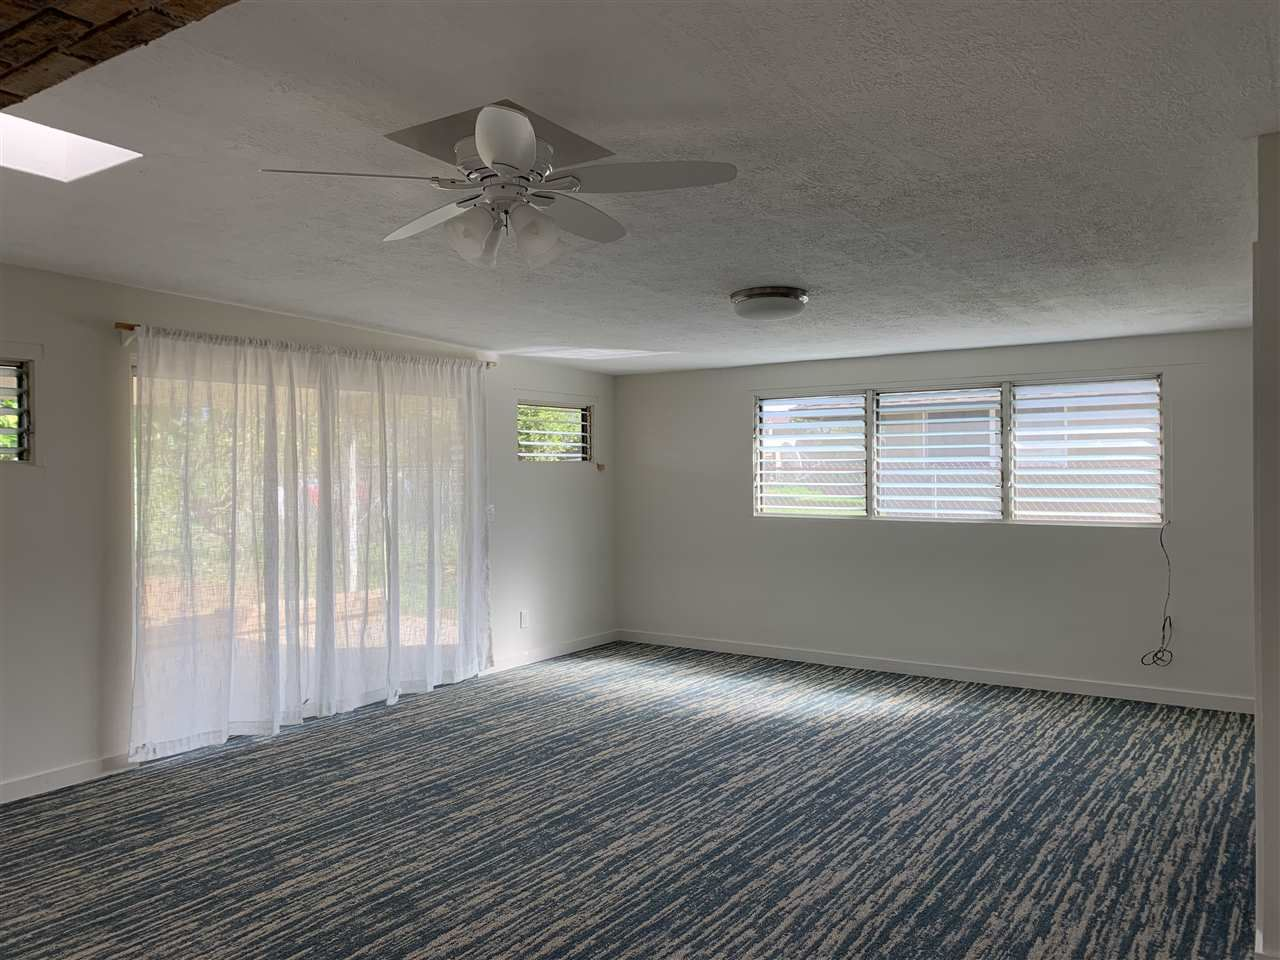 Photo of 747 Pomaikai St, Kahului, HI 96732 (MLS # 390030)